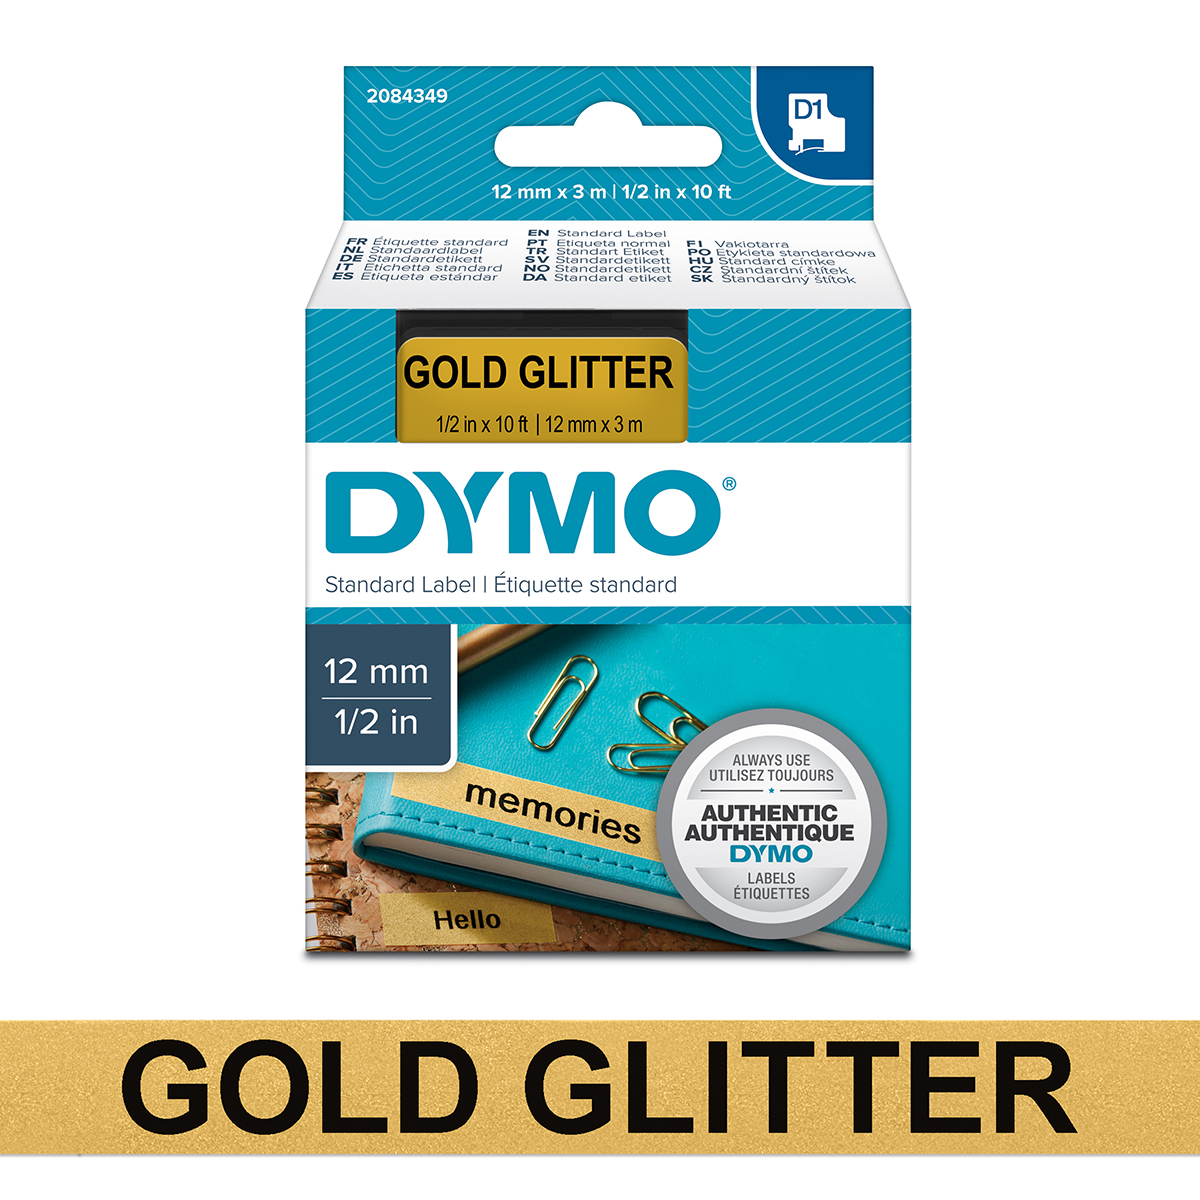 Dymo 2084349 D1 12mm x 3m Black on Gold Glitter Tape